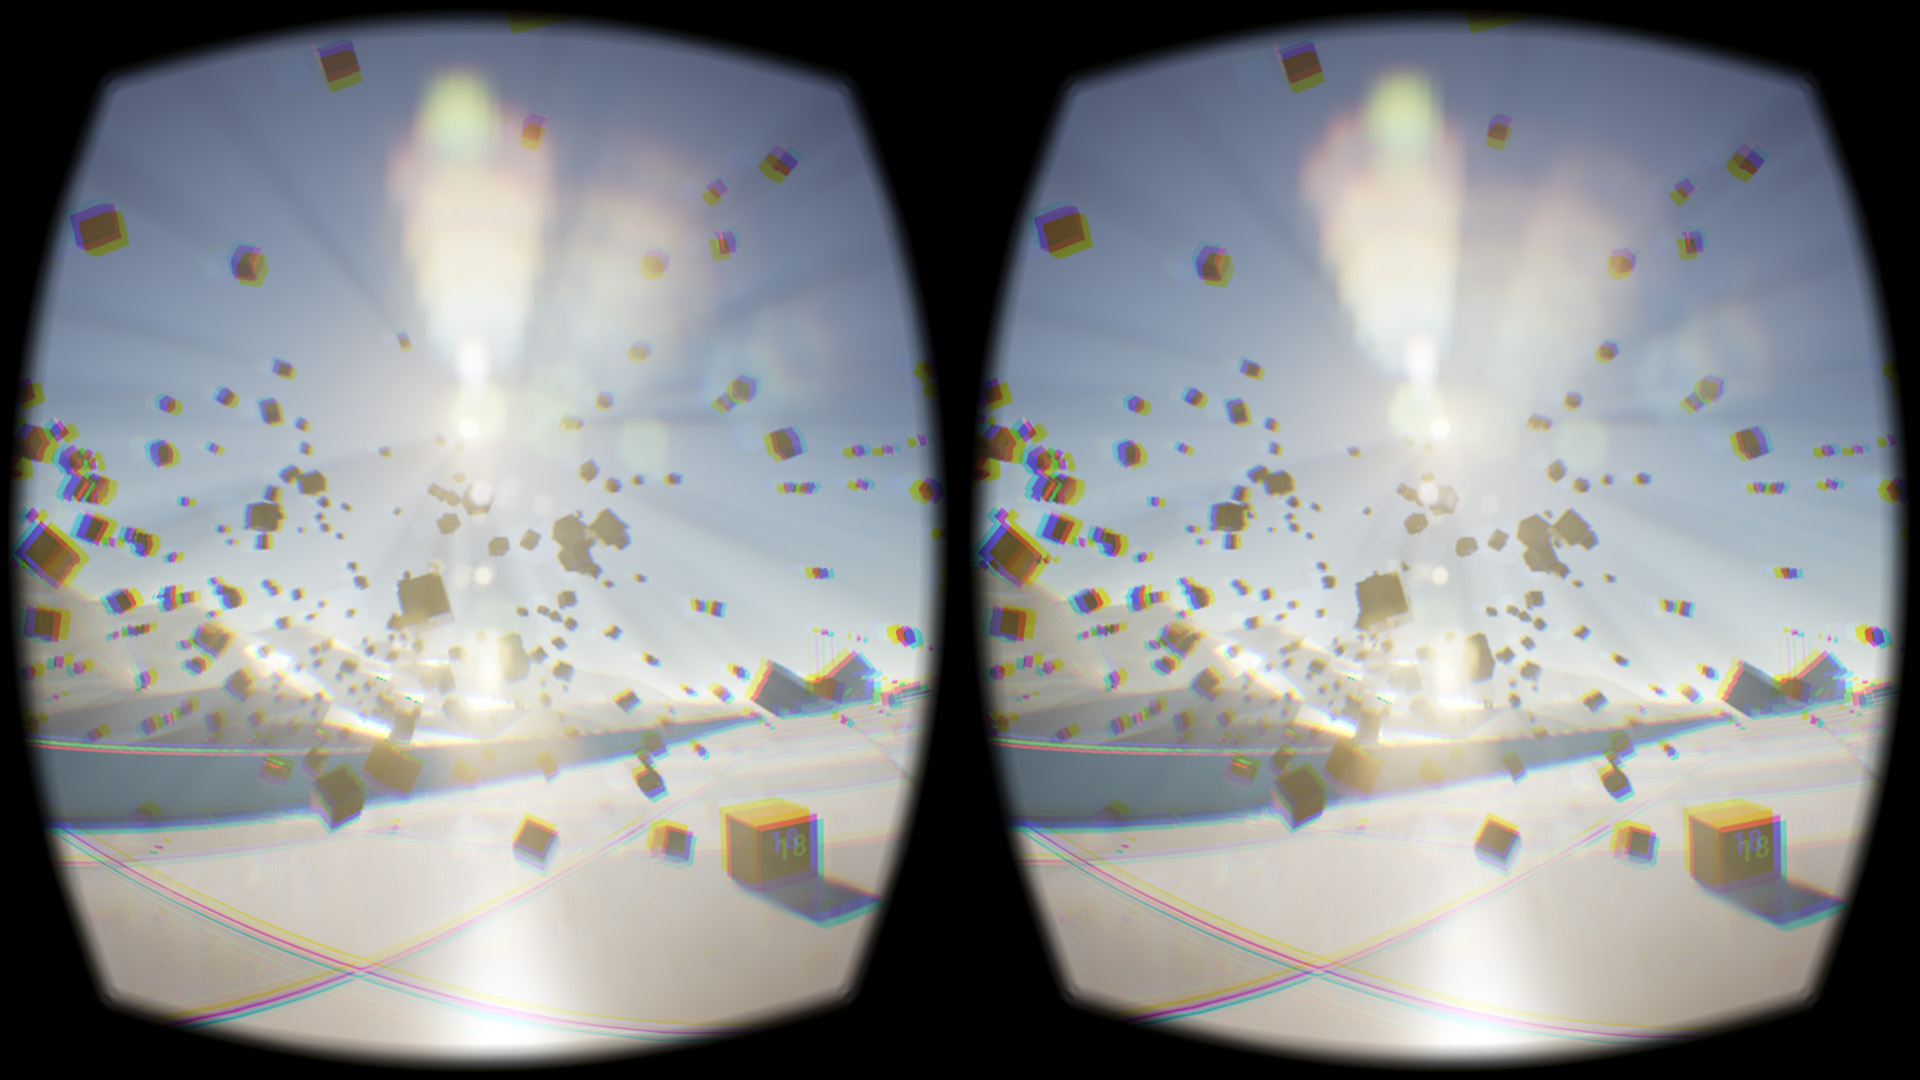 Image captured from an Oculus Rift DK2. Image credit: Ats Kurvet.